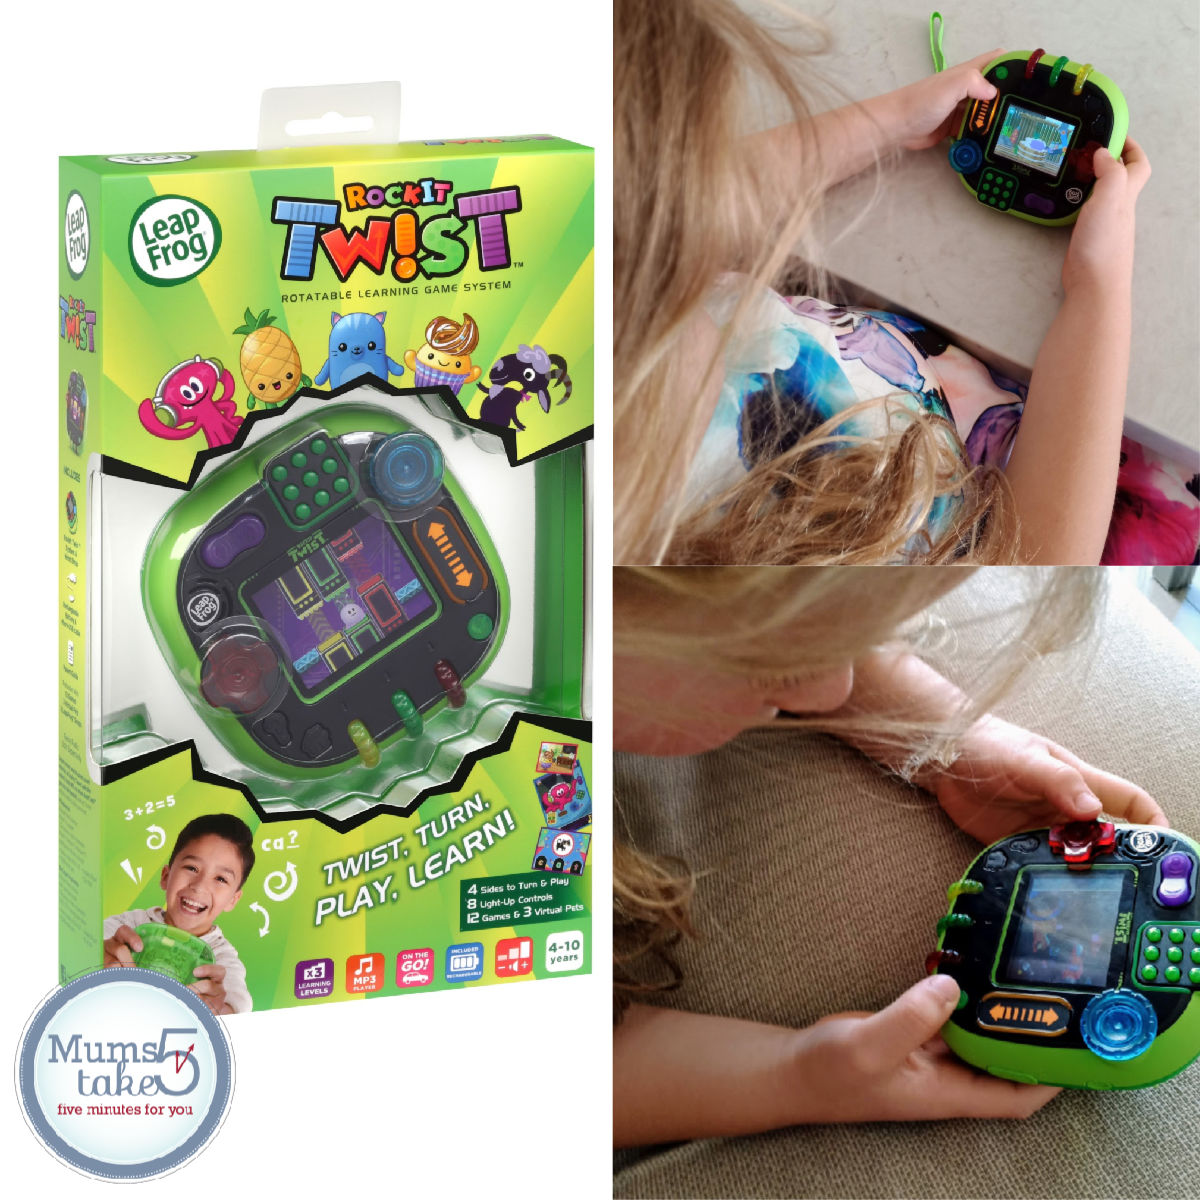 Leap Frog RockIT Twist Review